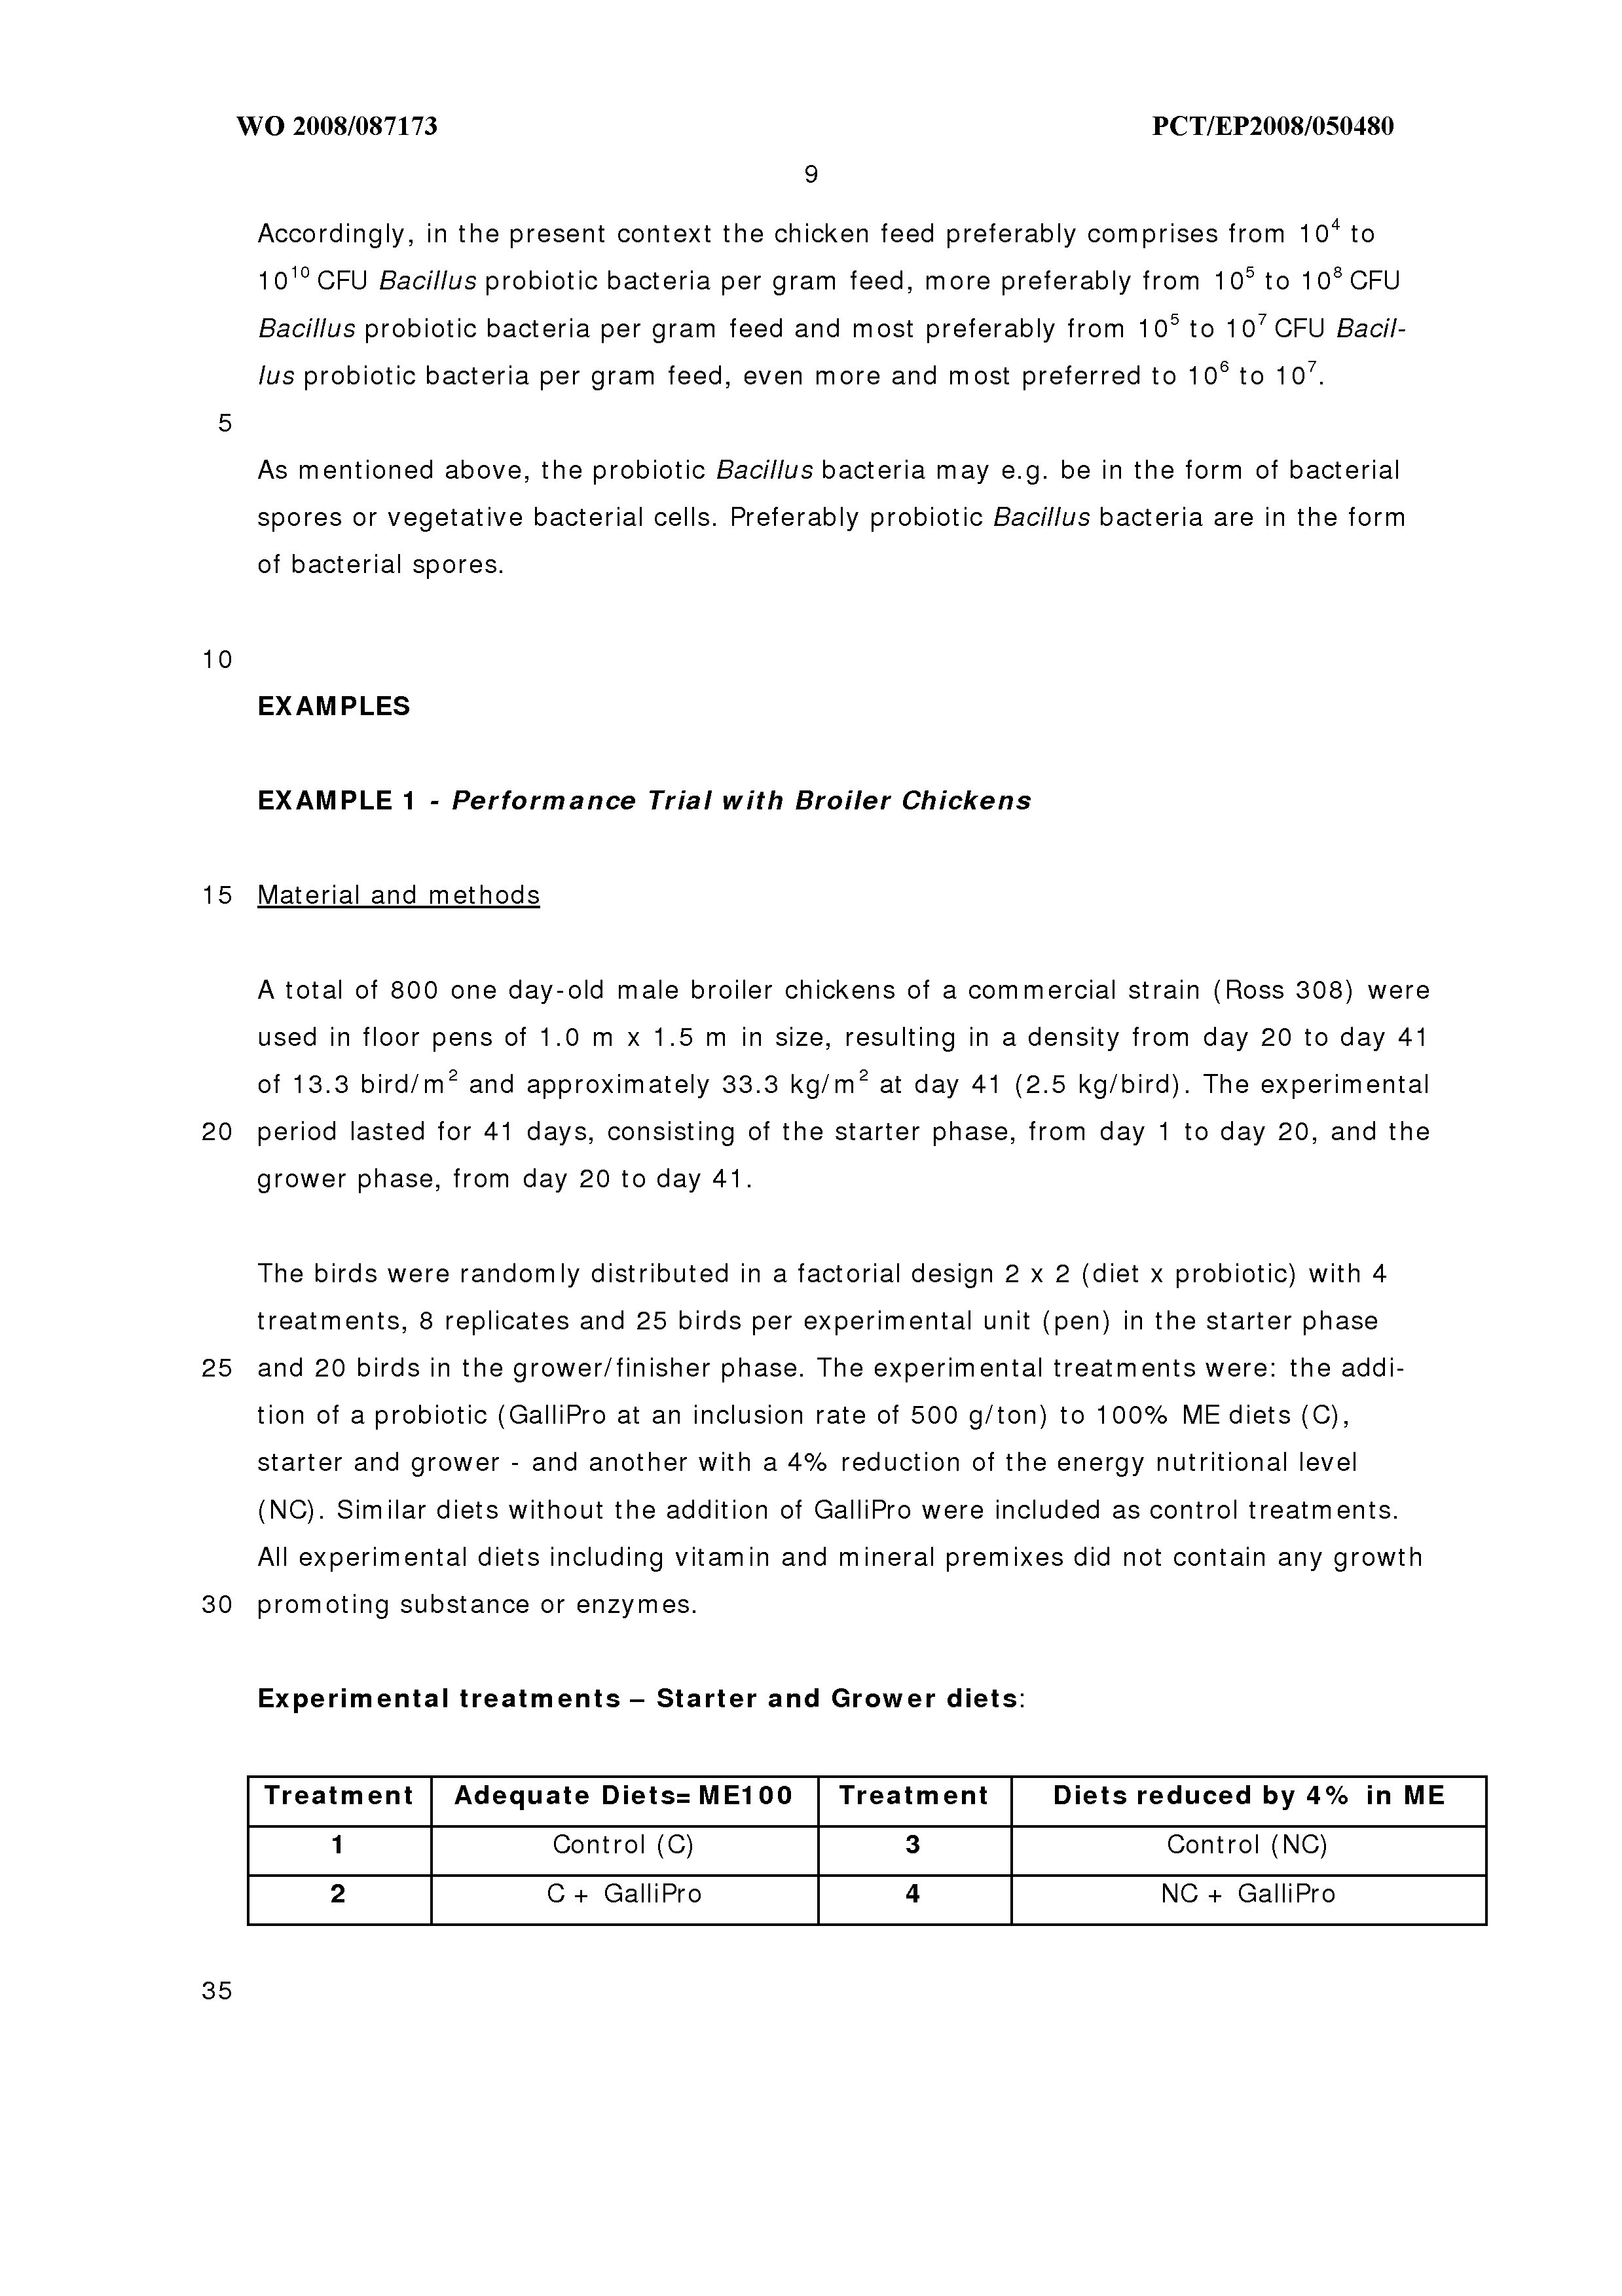 WO 2008/087173 A1 - Method To Produce Chickens - The Lens